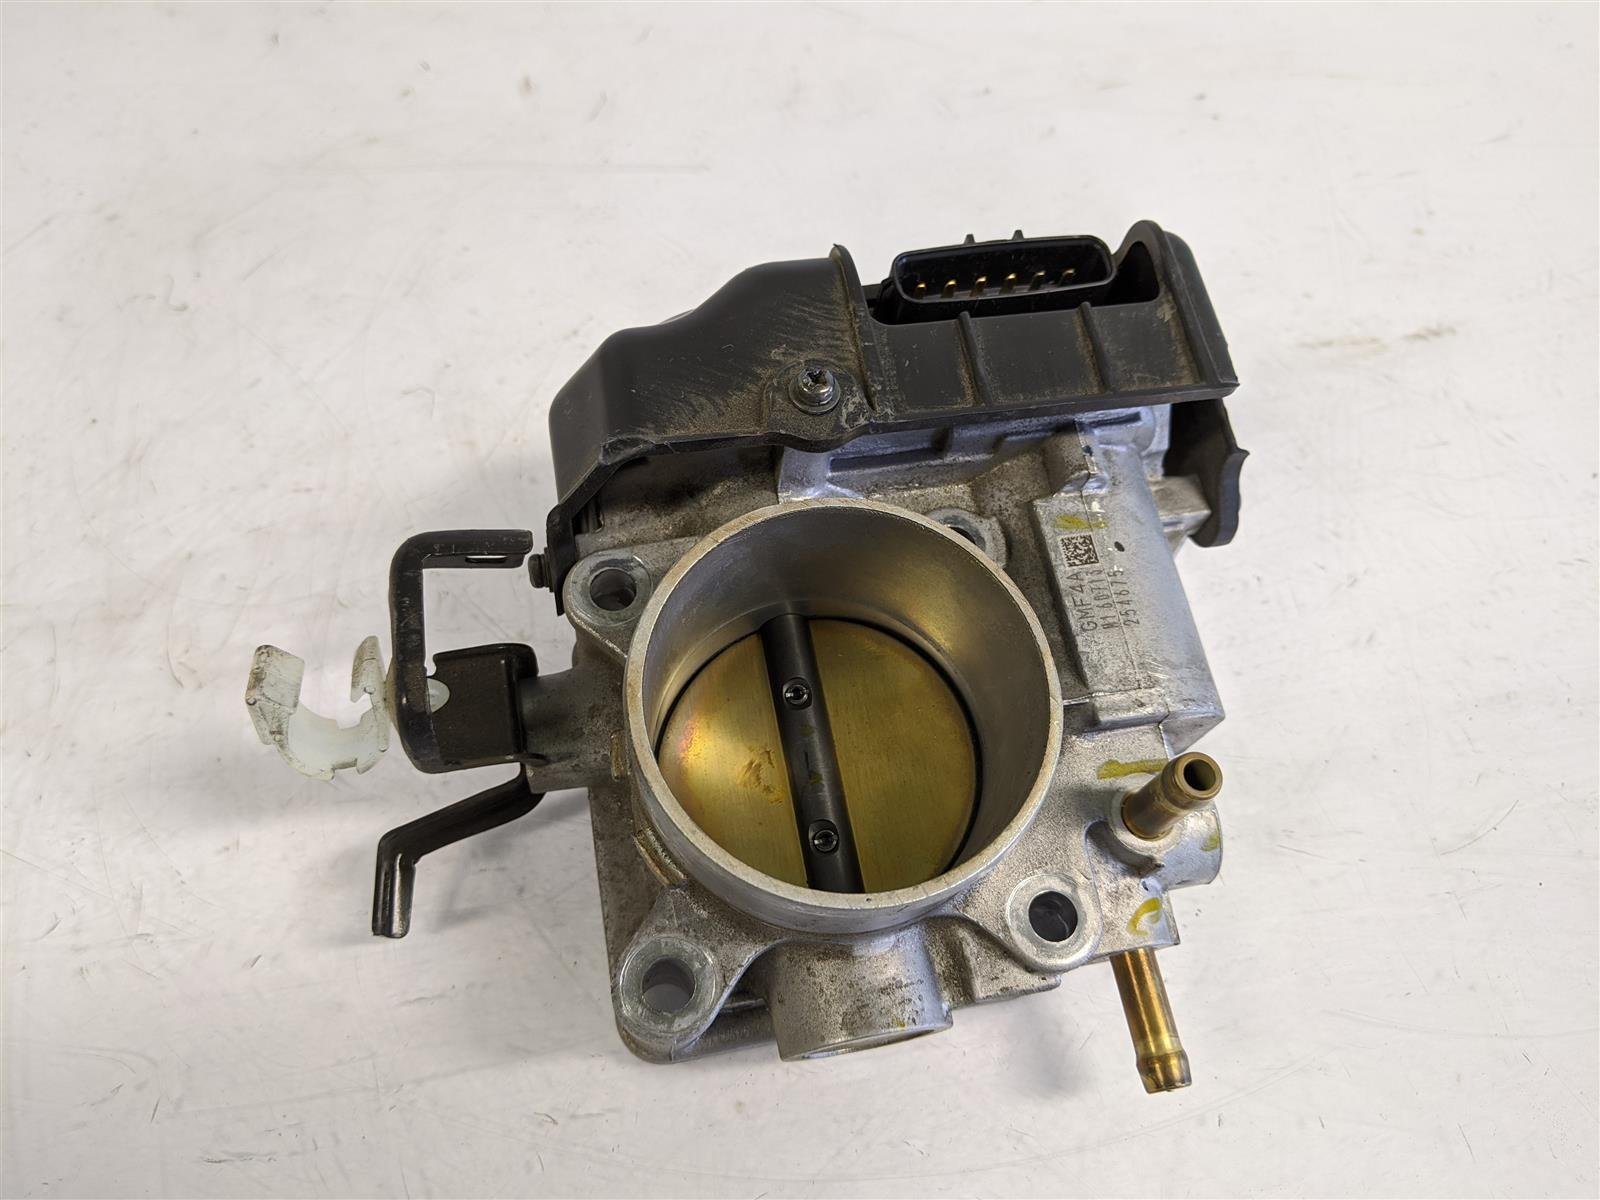 2017 Acura TLX 2.4l Throttle Body Replacement